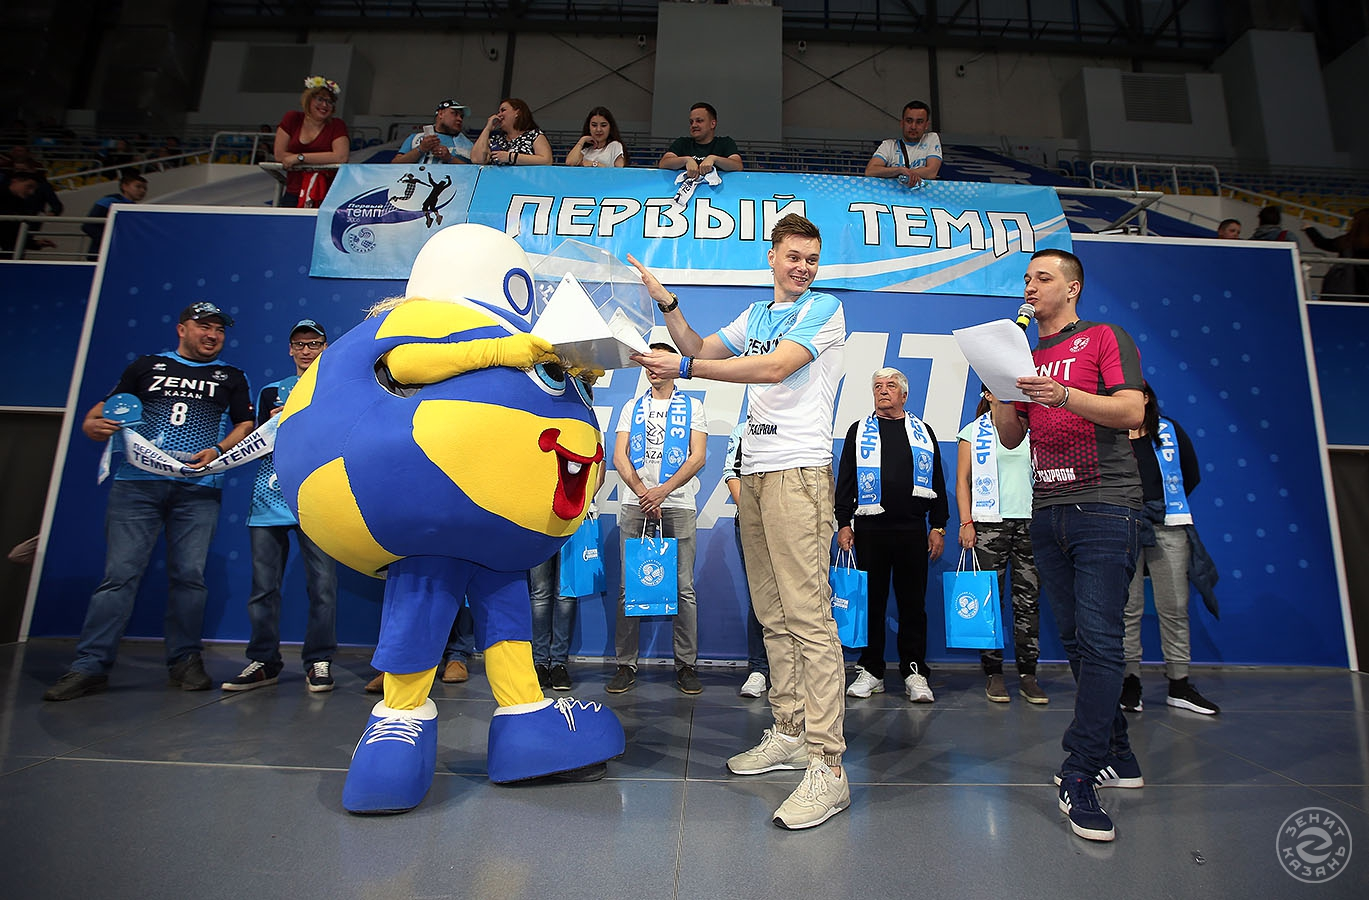 Official Site Vc Zenit Kazan Media Photogallery Zenit Kazan Kuzbass 1 3